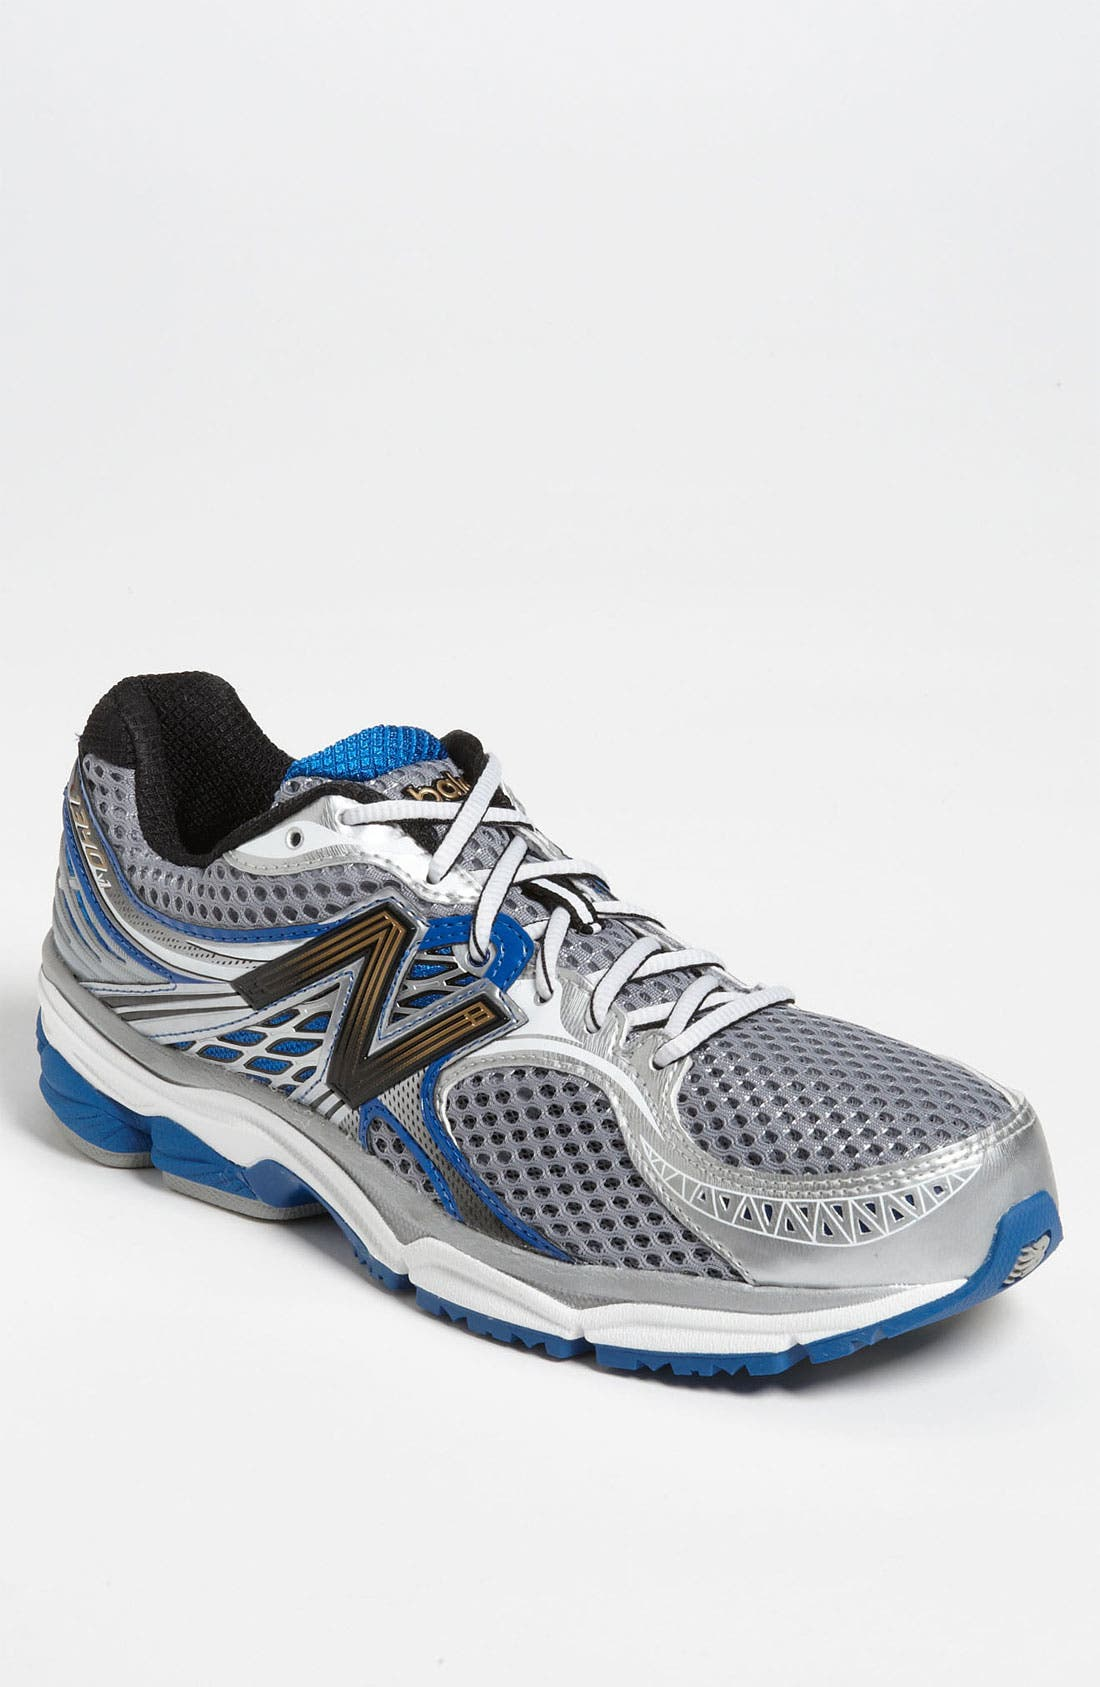 Main Image - New Balance '1340' Running Shoe (Men) (Online Only)